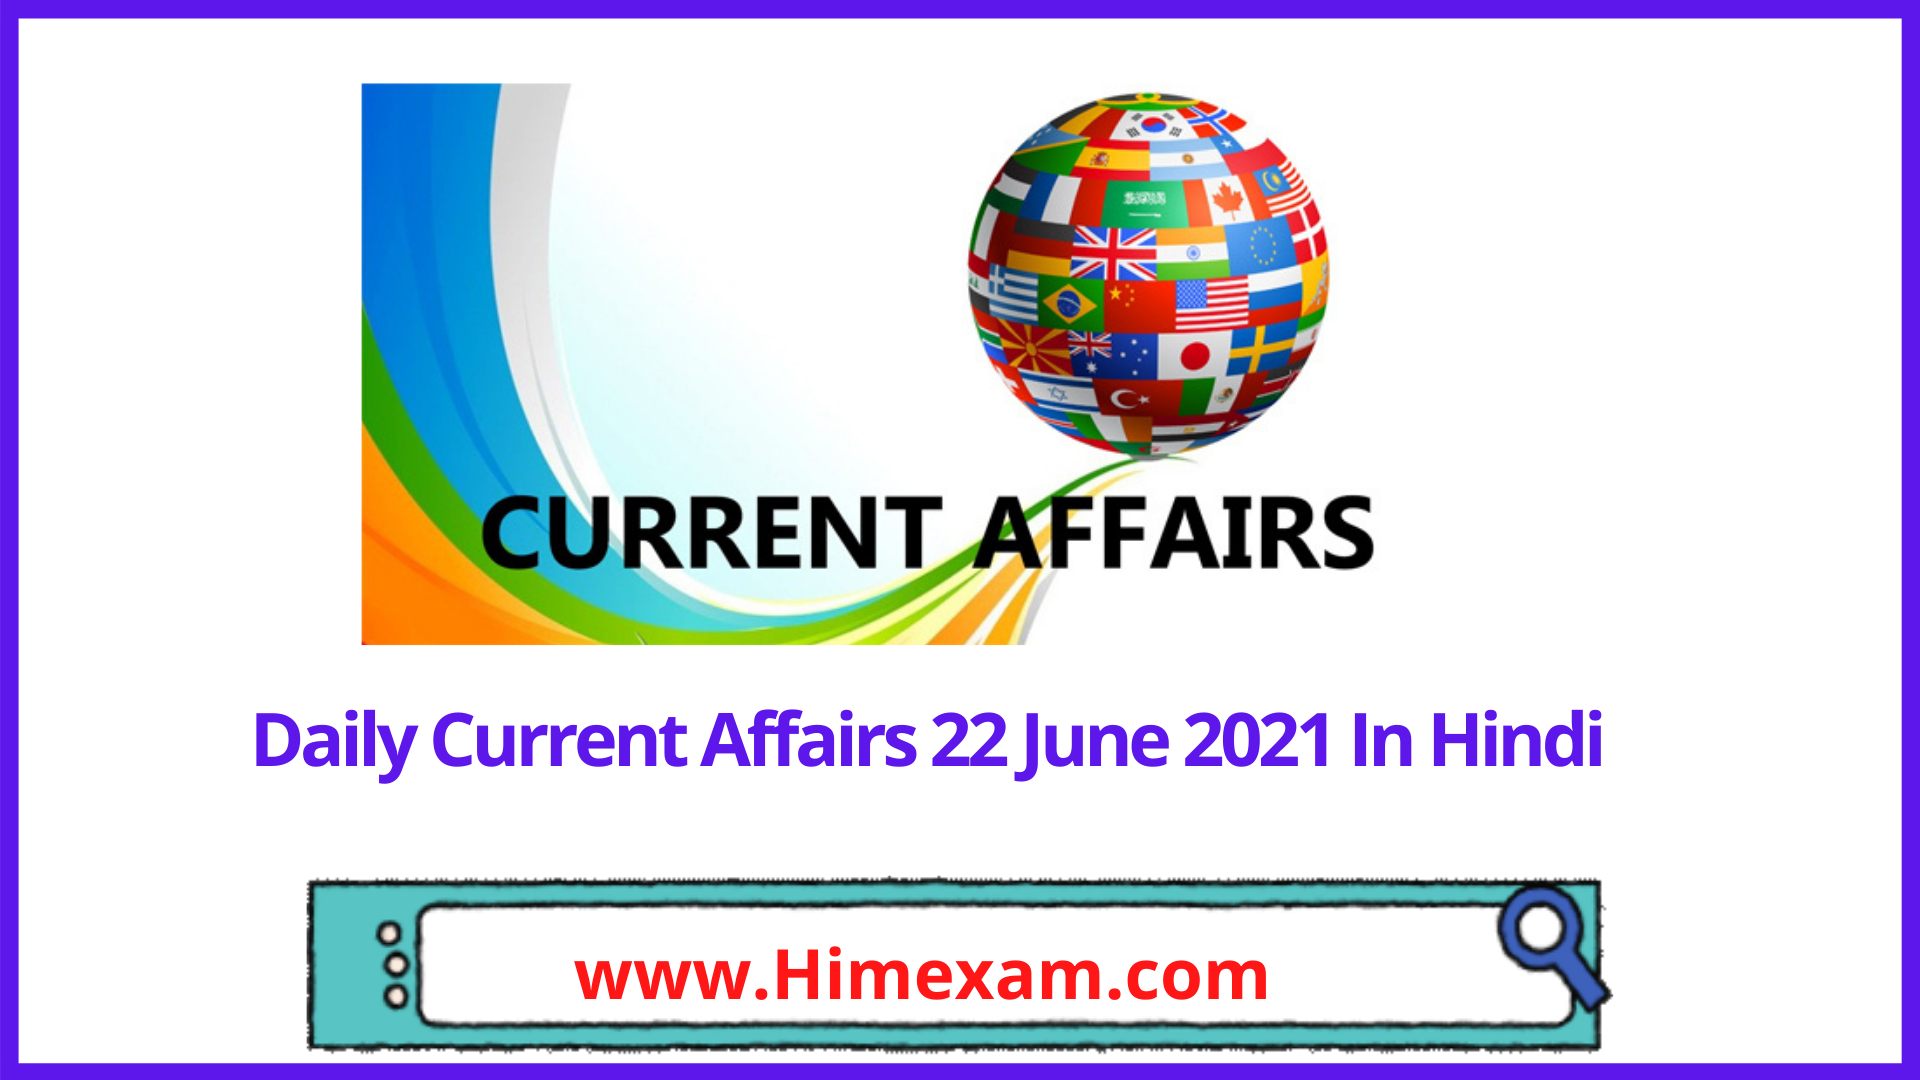 Daily Current Affairs 22 June 2021 In Hindi